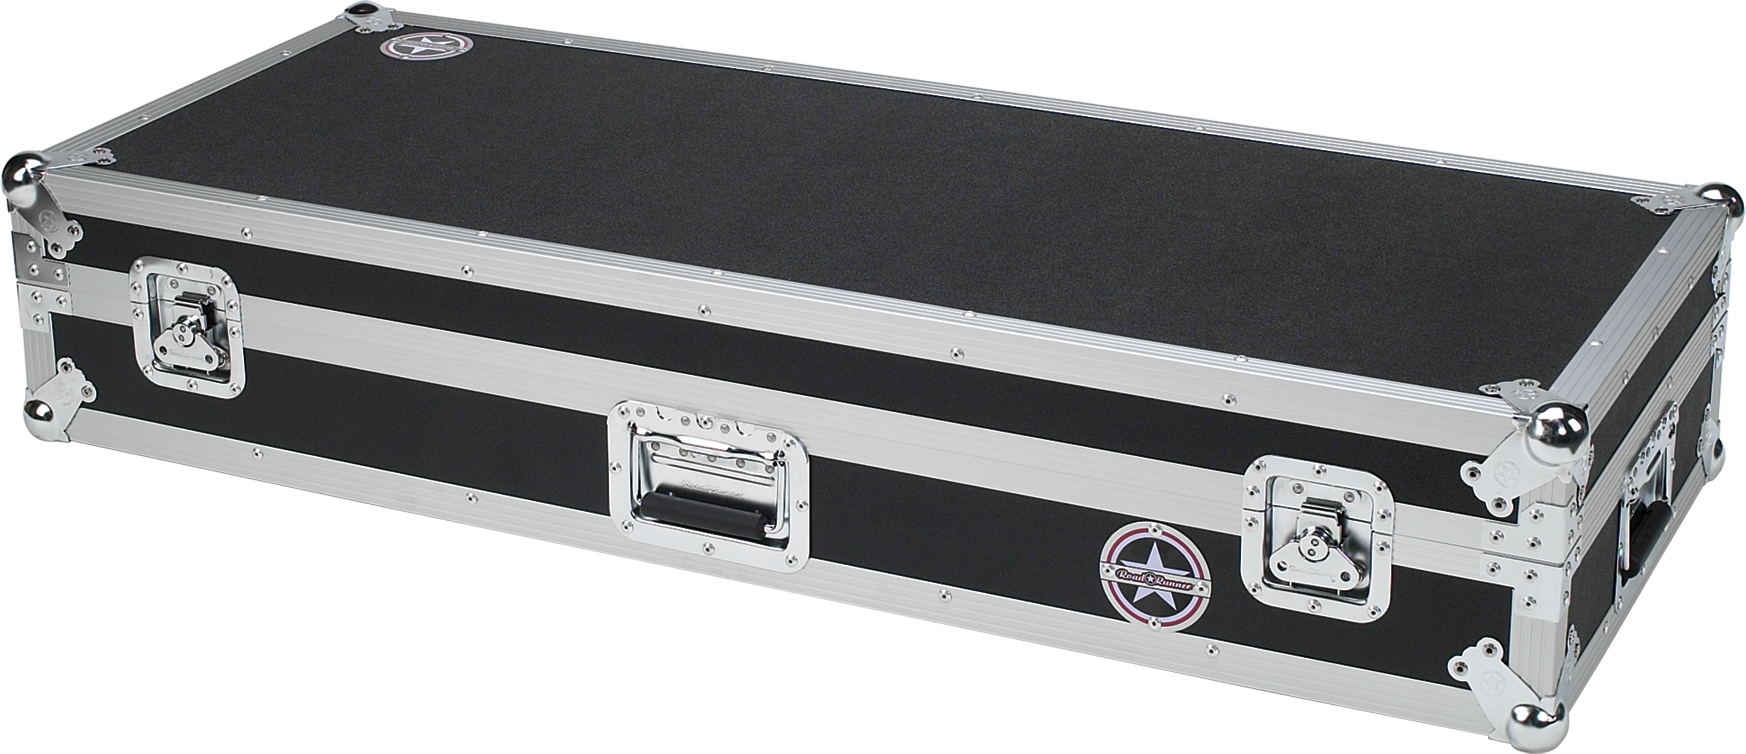 61 Key Keyboard Flight Case with Casters Road Runner KBRR61W